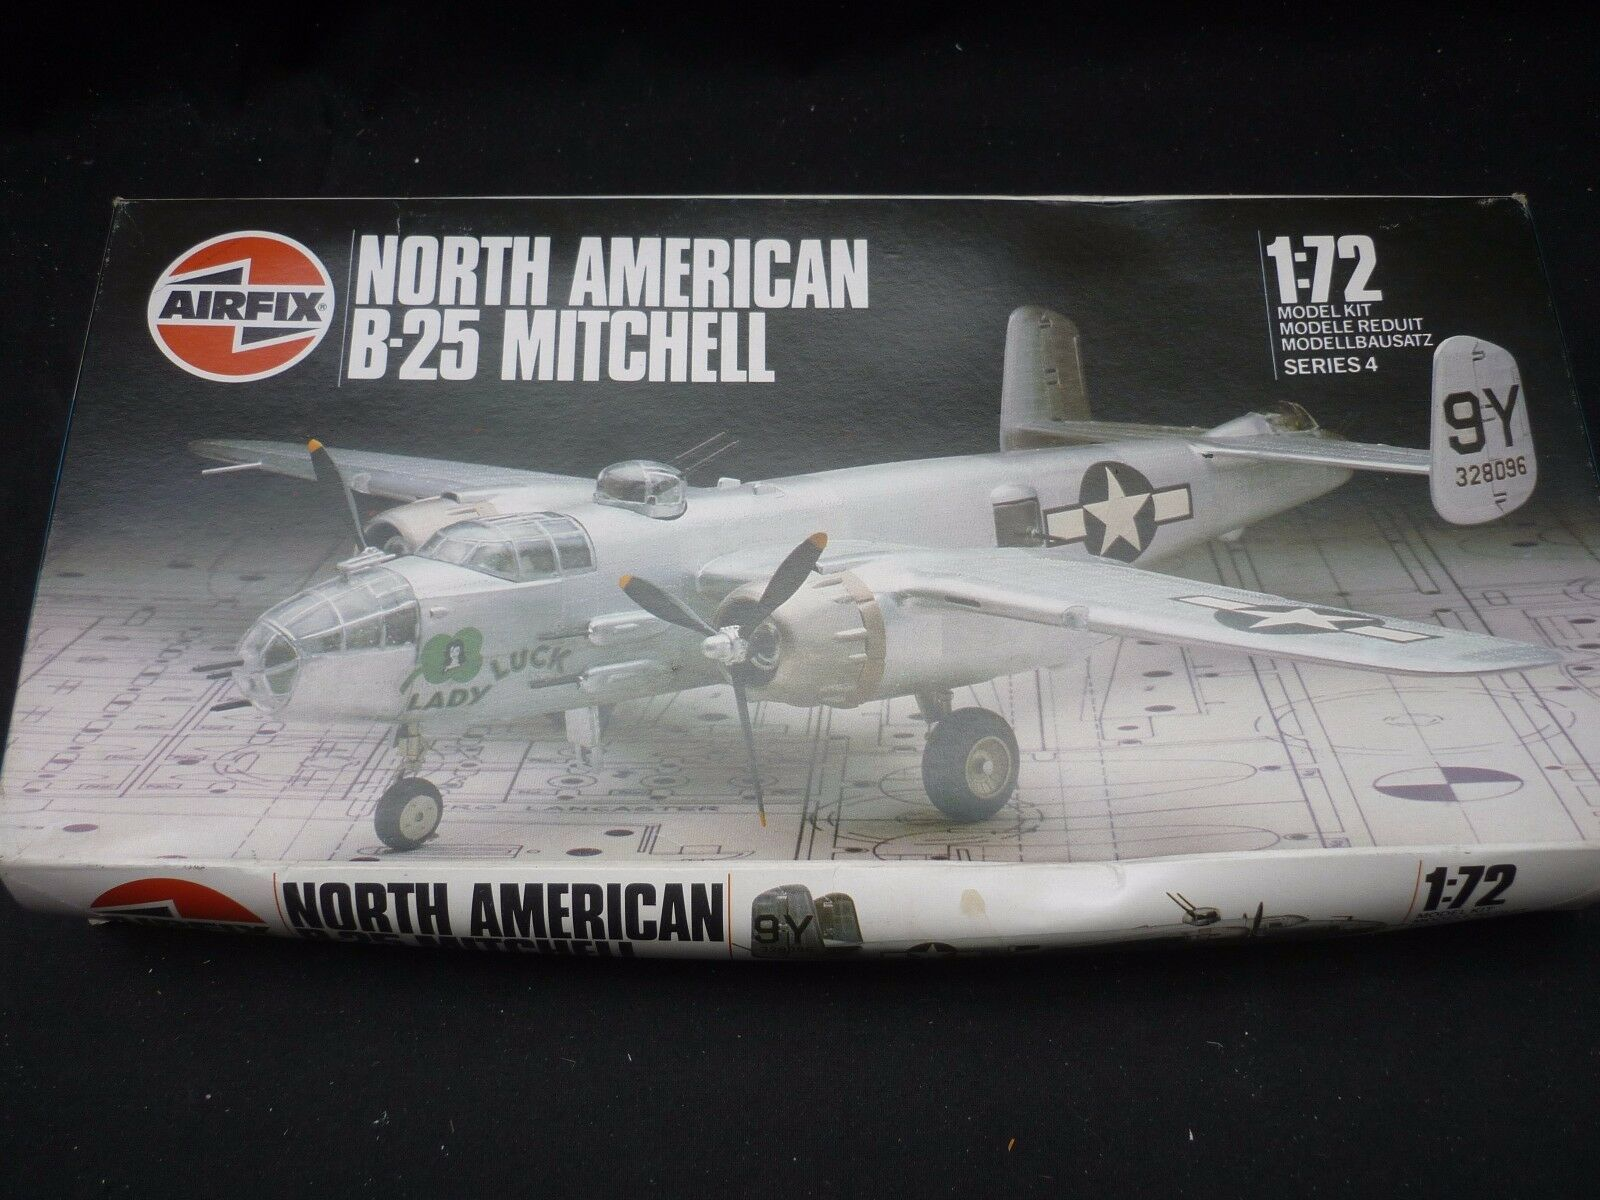 Airfix predotype un made plastic kit of a North American B-25 Mitchell, Signed